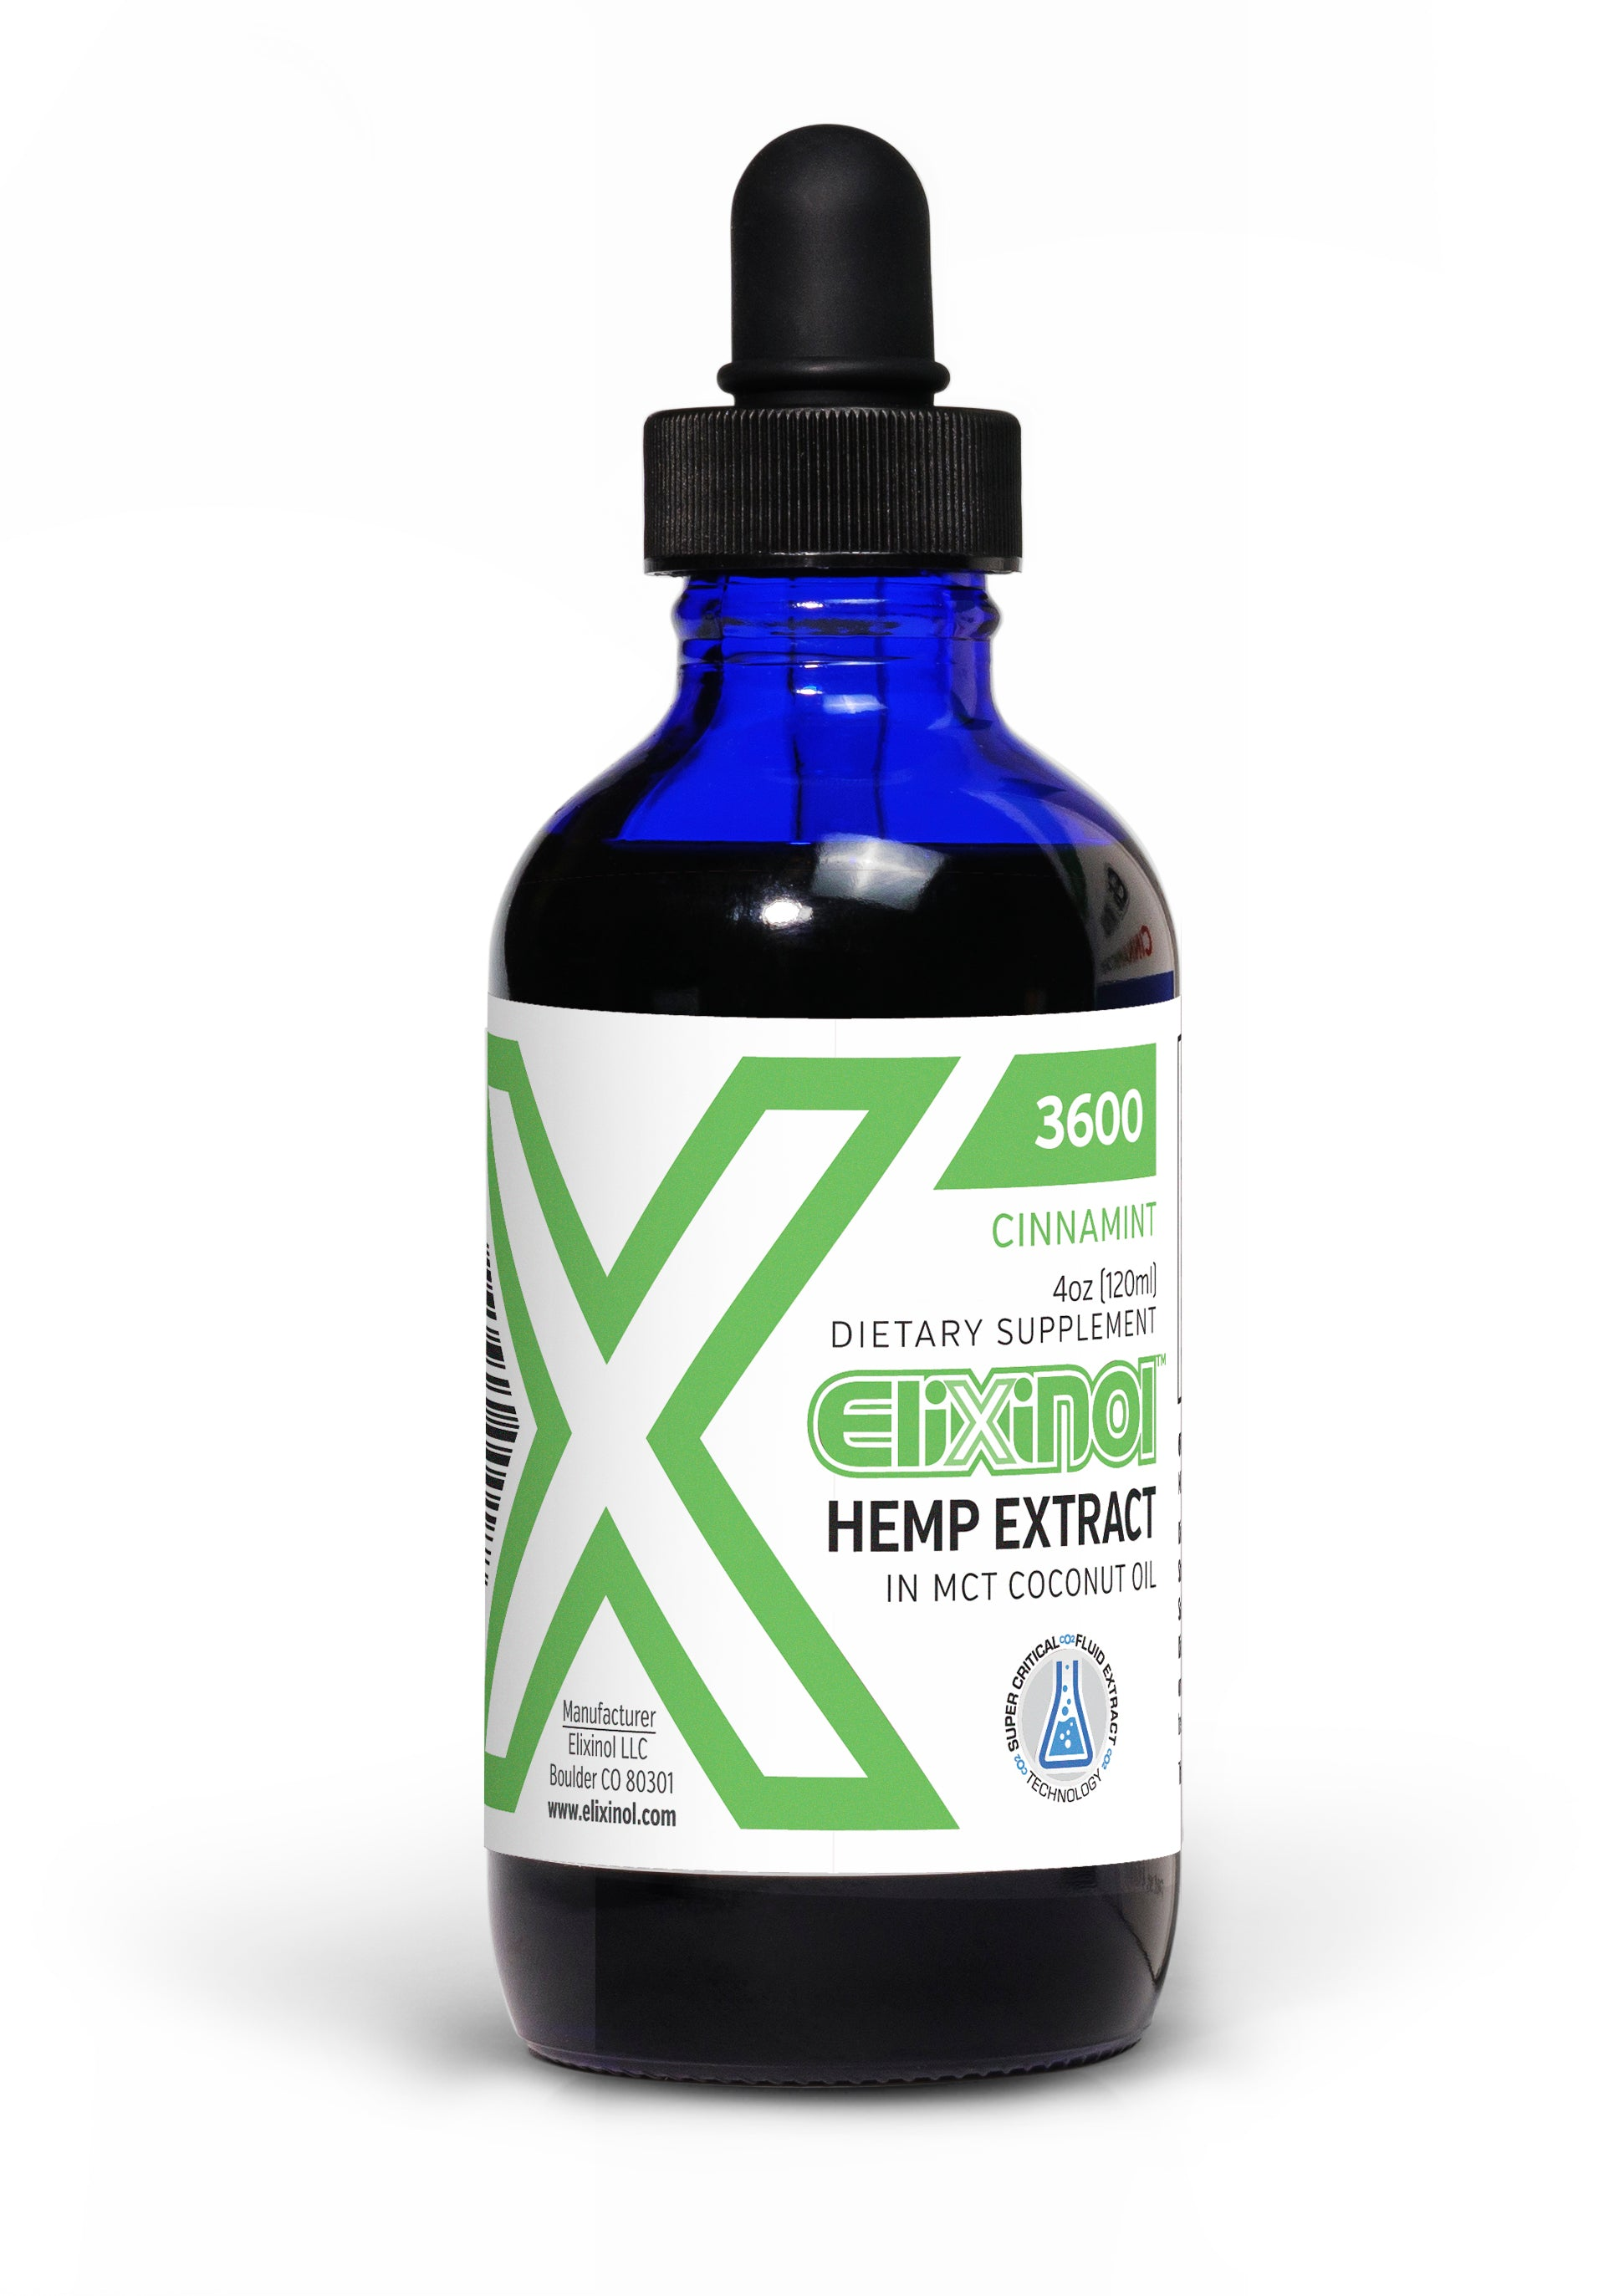 Elixinol 3600mg Cinnamint or Natural Flavor Tincture